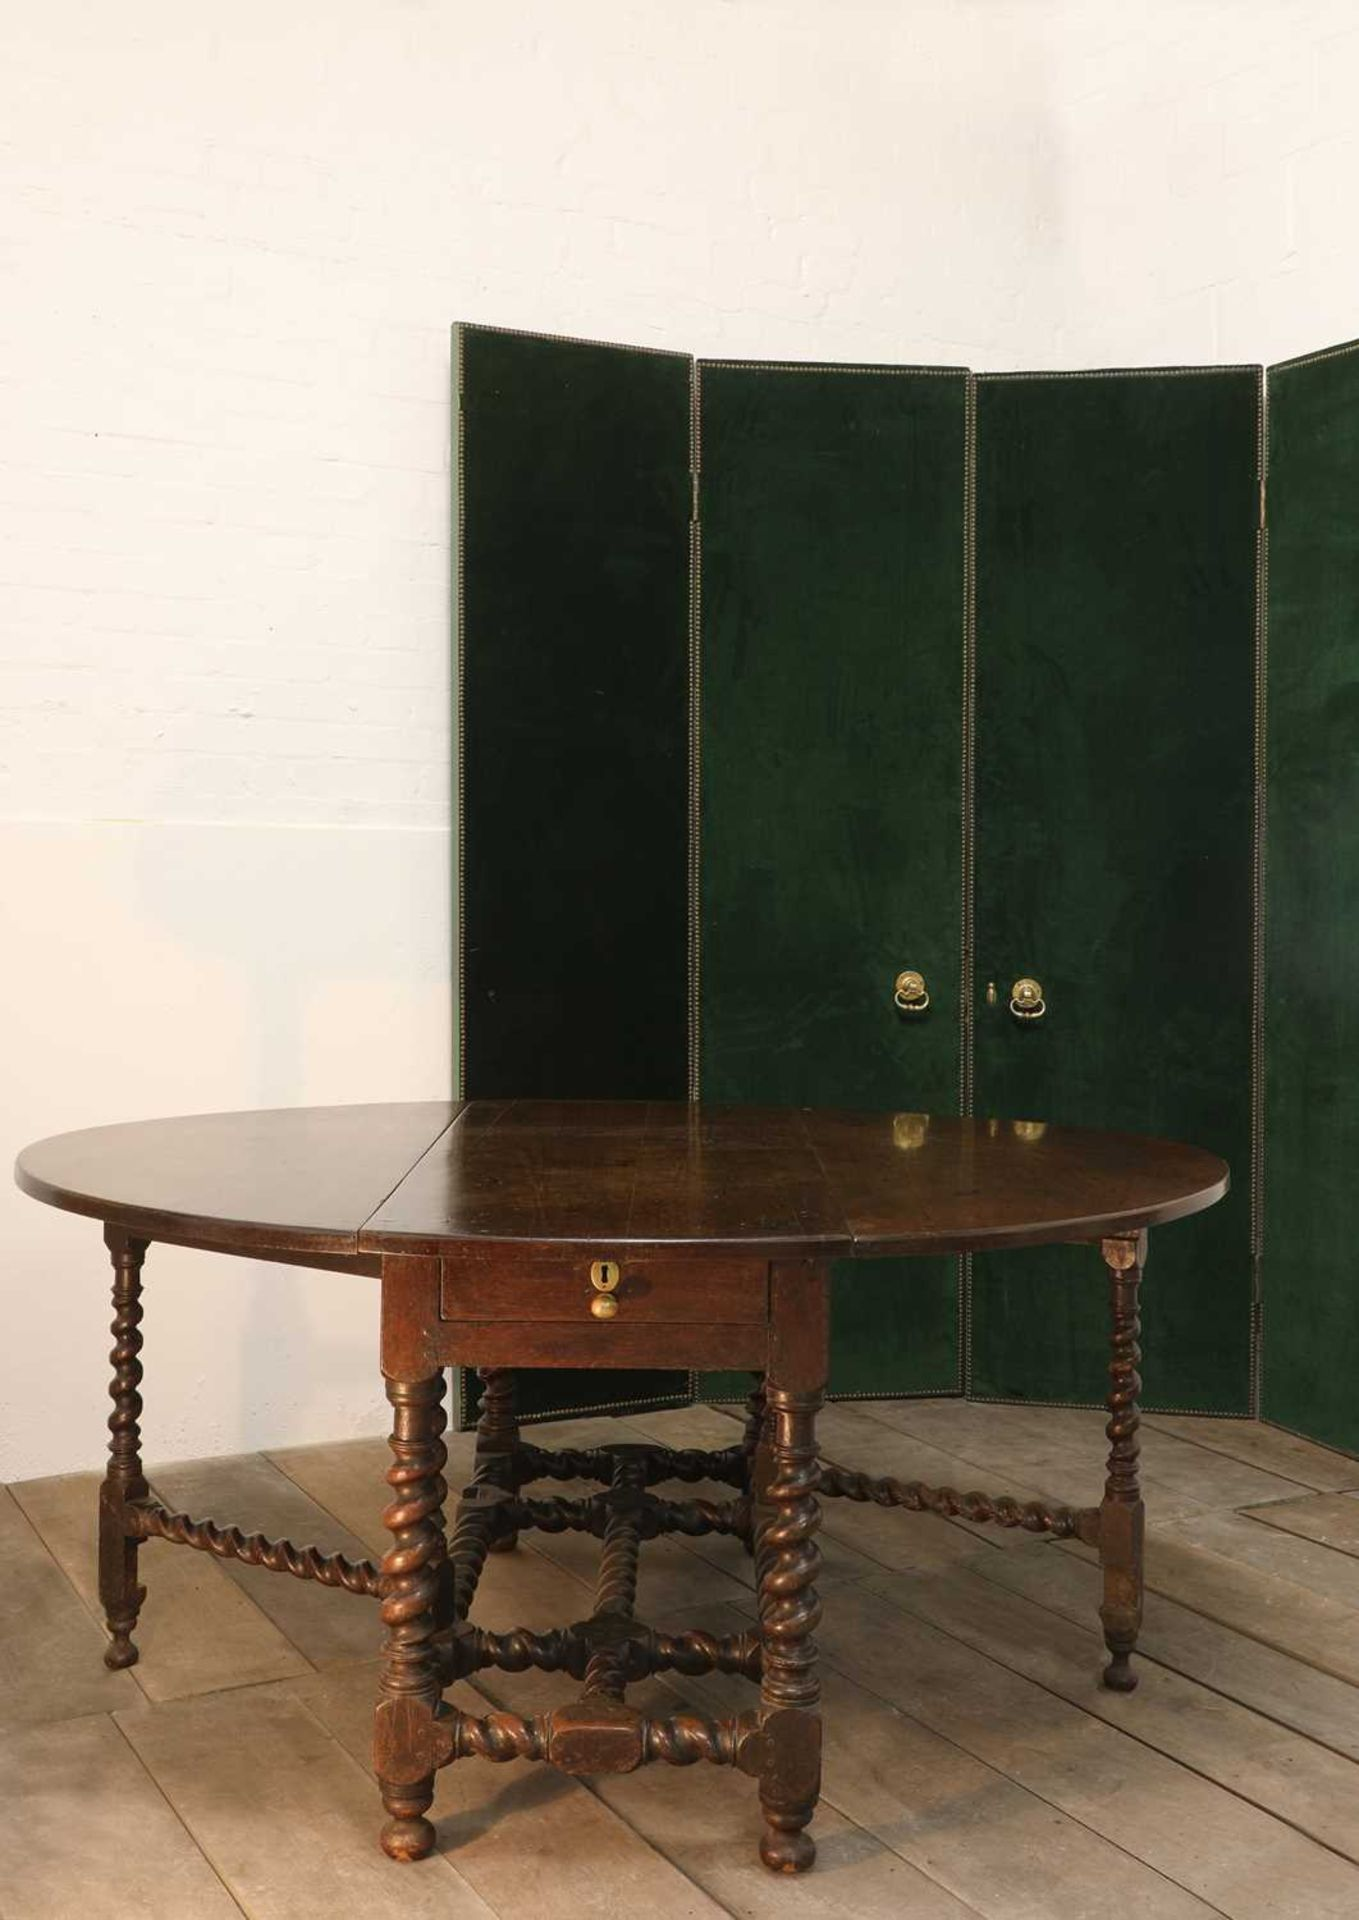 A rare, large and documented, oak and mahogany gateleg dining table,